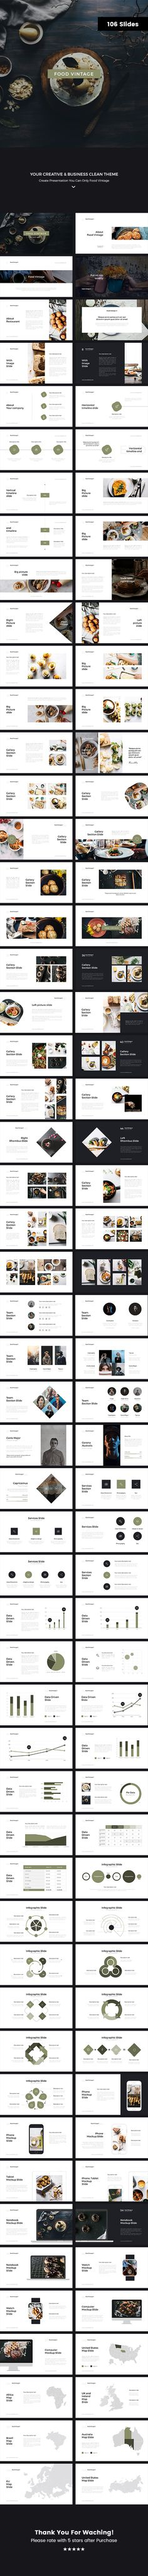 Food Vintage 3 Keynote Template — Keynote KEY #light #minimal • Download ➝ https://graphicriver.net/item/food-vintage-3-keynote-template/18832202?ref=pxcr